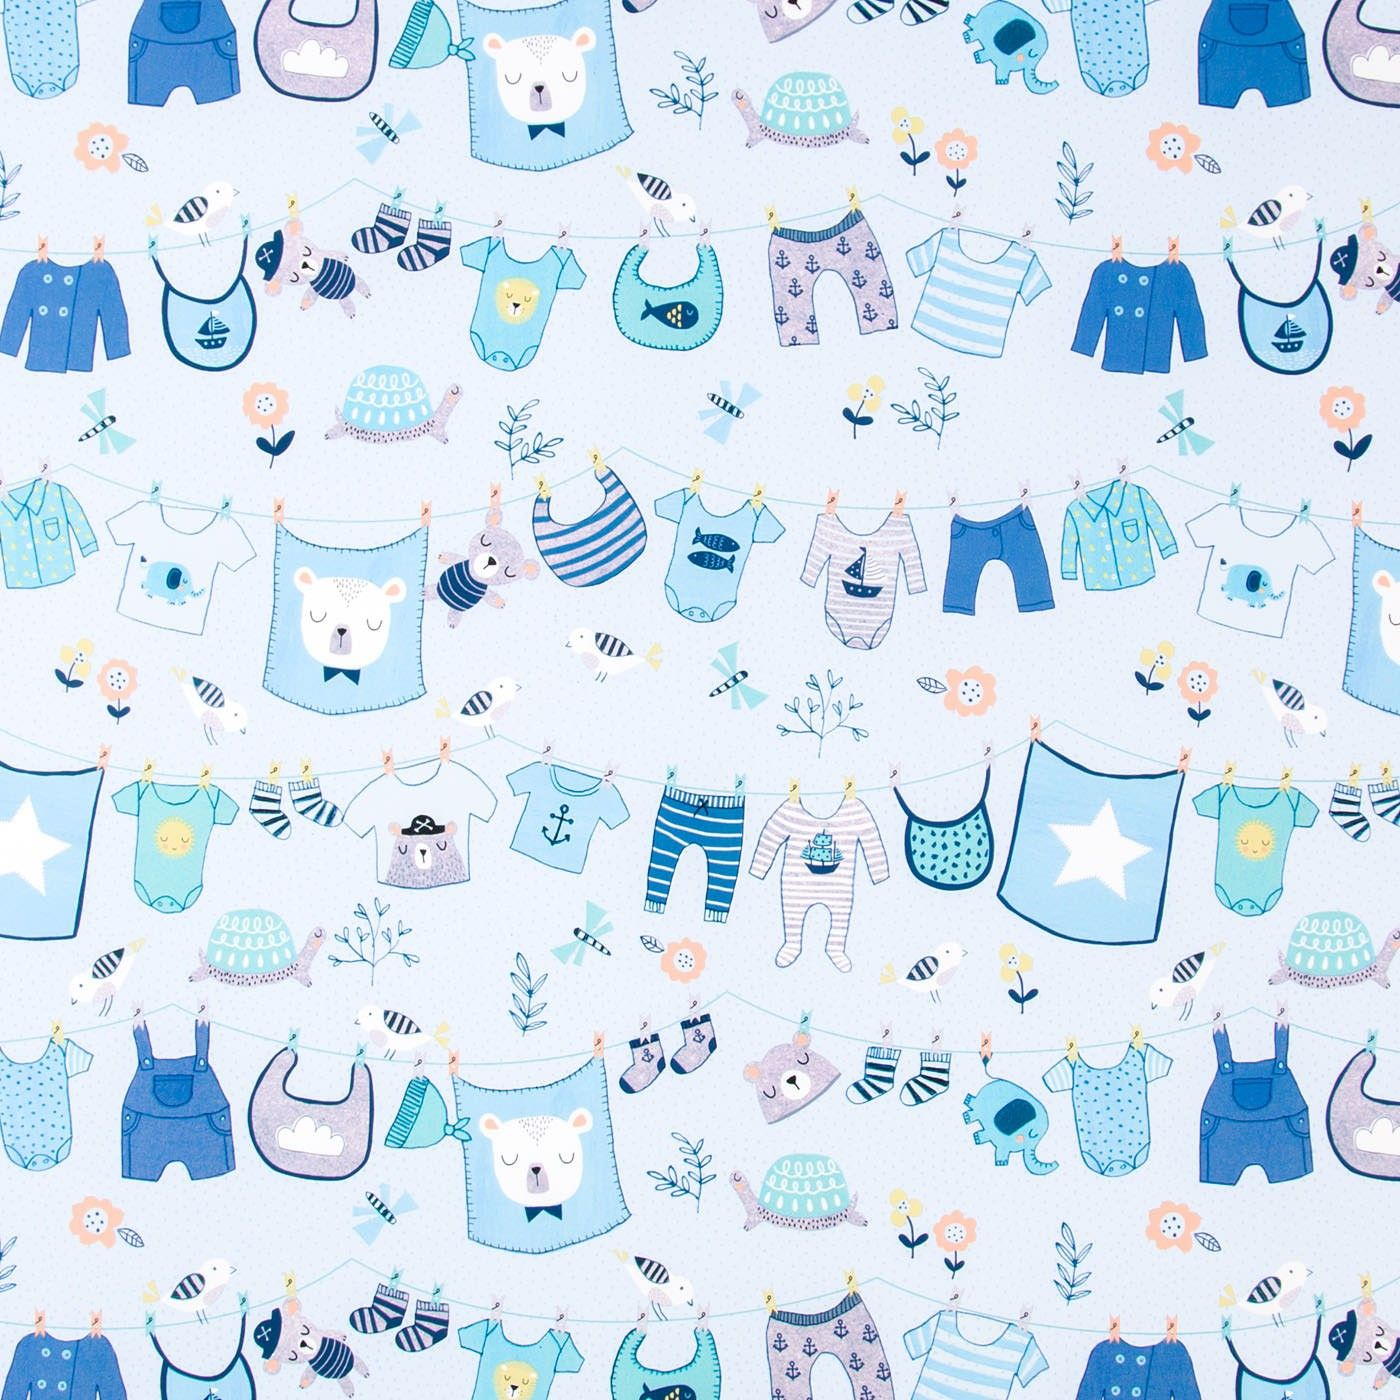 Welcome Their Sweet Baby Boy With This Cute Roll Wrap Adorable Baby Clothes And Accessories In Shades Of B Baby Boy Background Baby Boy Baby Girl Announcement